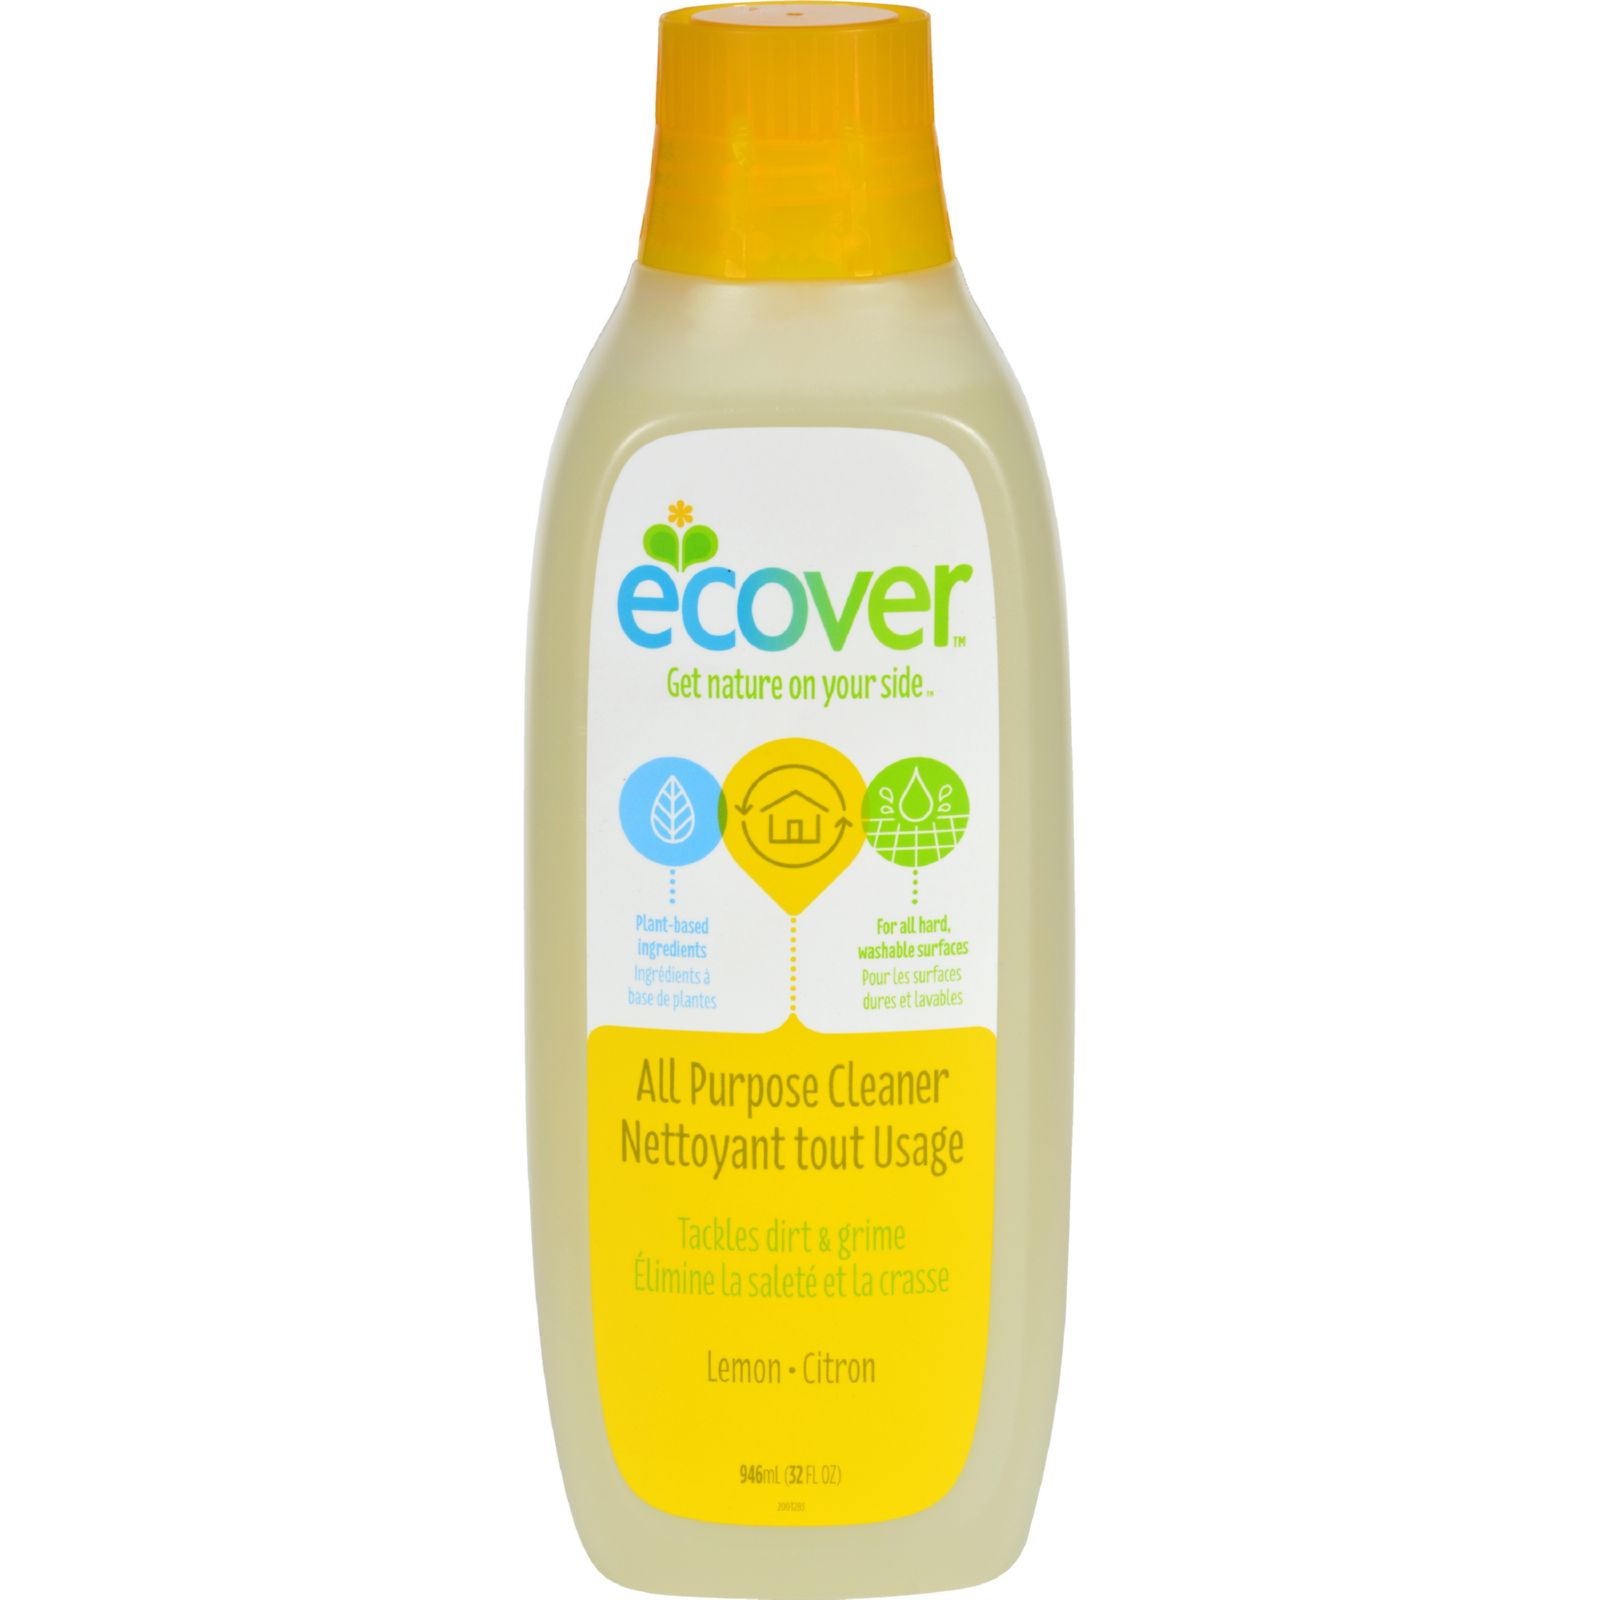 Ecover All Purpose Cleaner - 32 oz